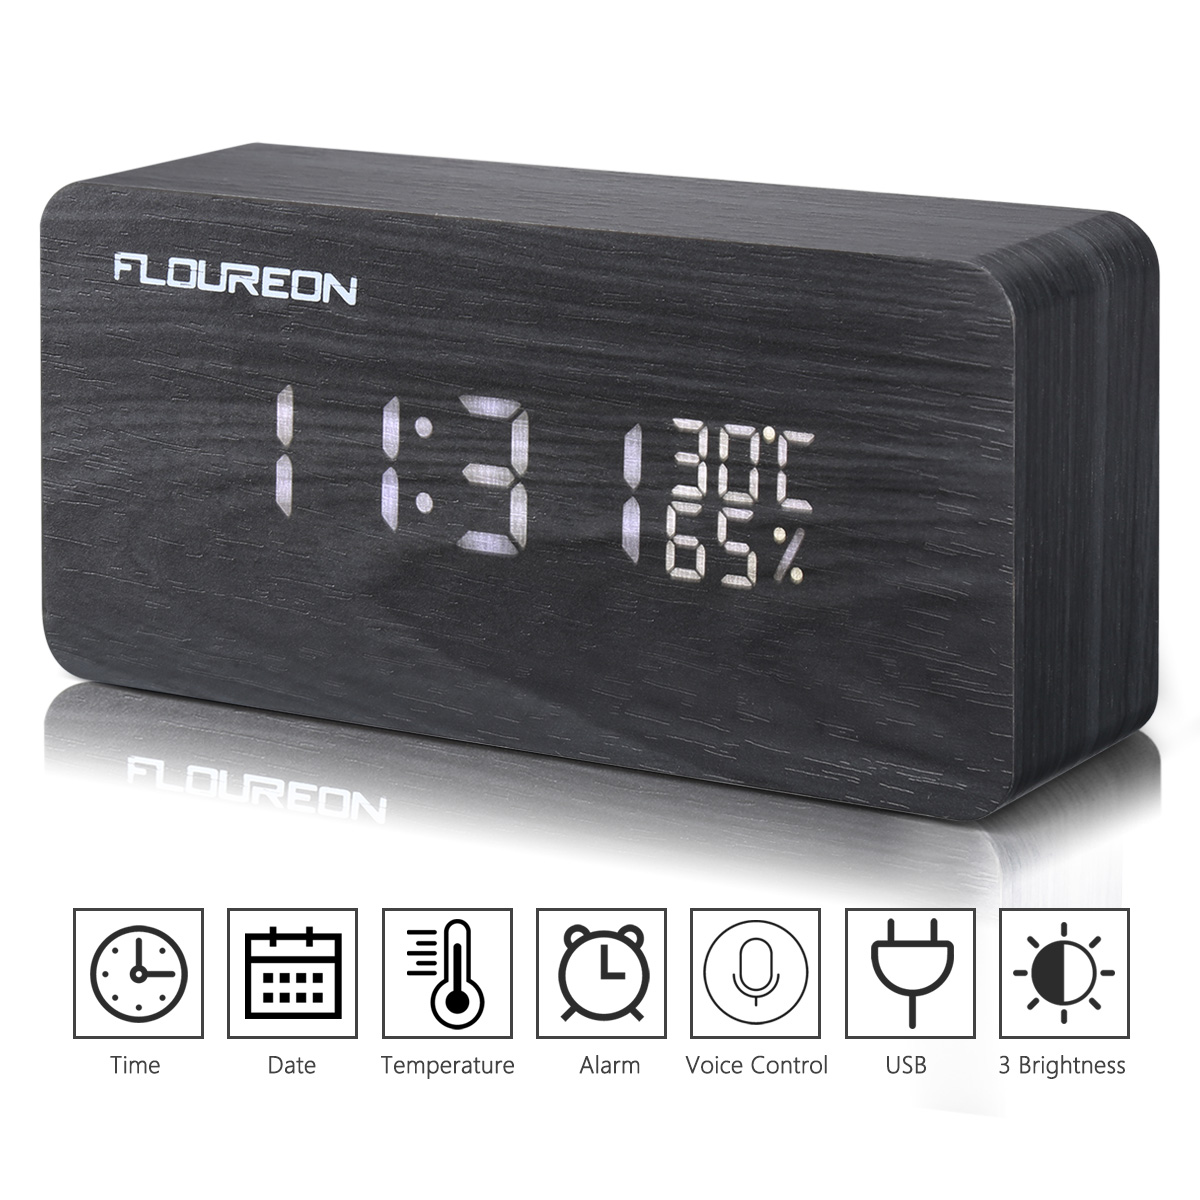 Small Led Alarm Clock Desk Alarm Clock Floureon Wooden Led Cube Digitl Desk